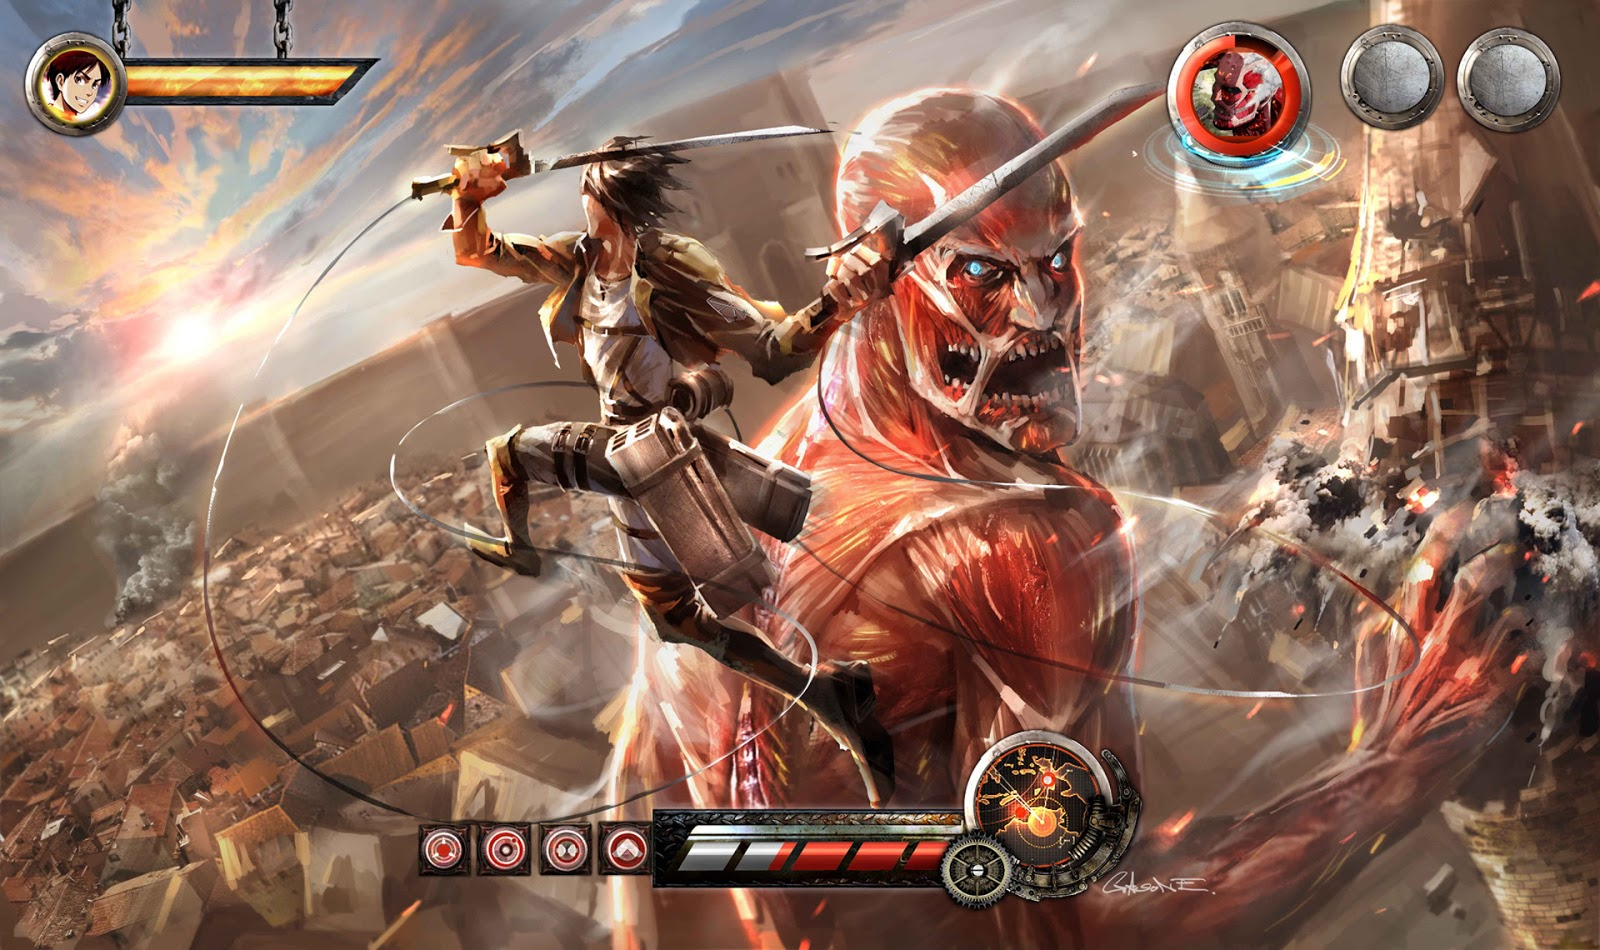 Hd Wallpaper Eren Jaeger Vs Colossal Titan Epic Fight A44